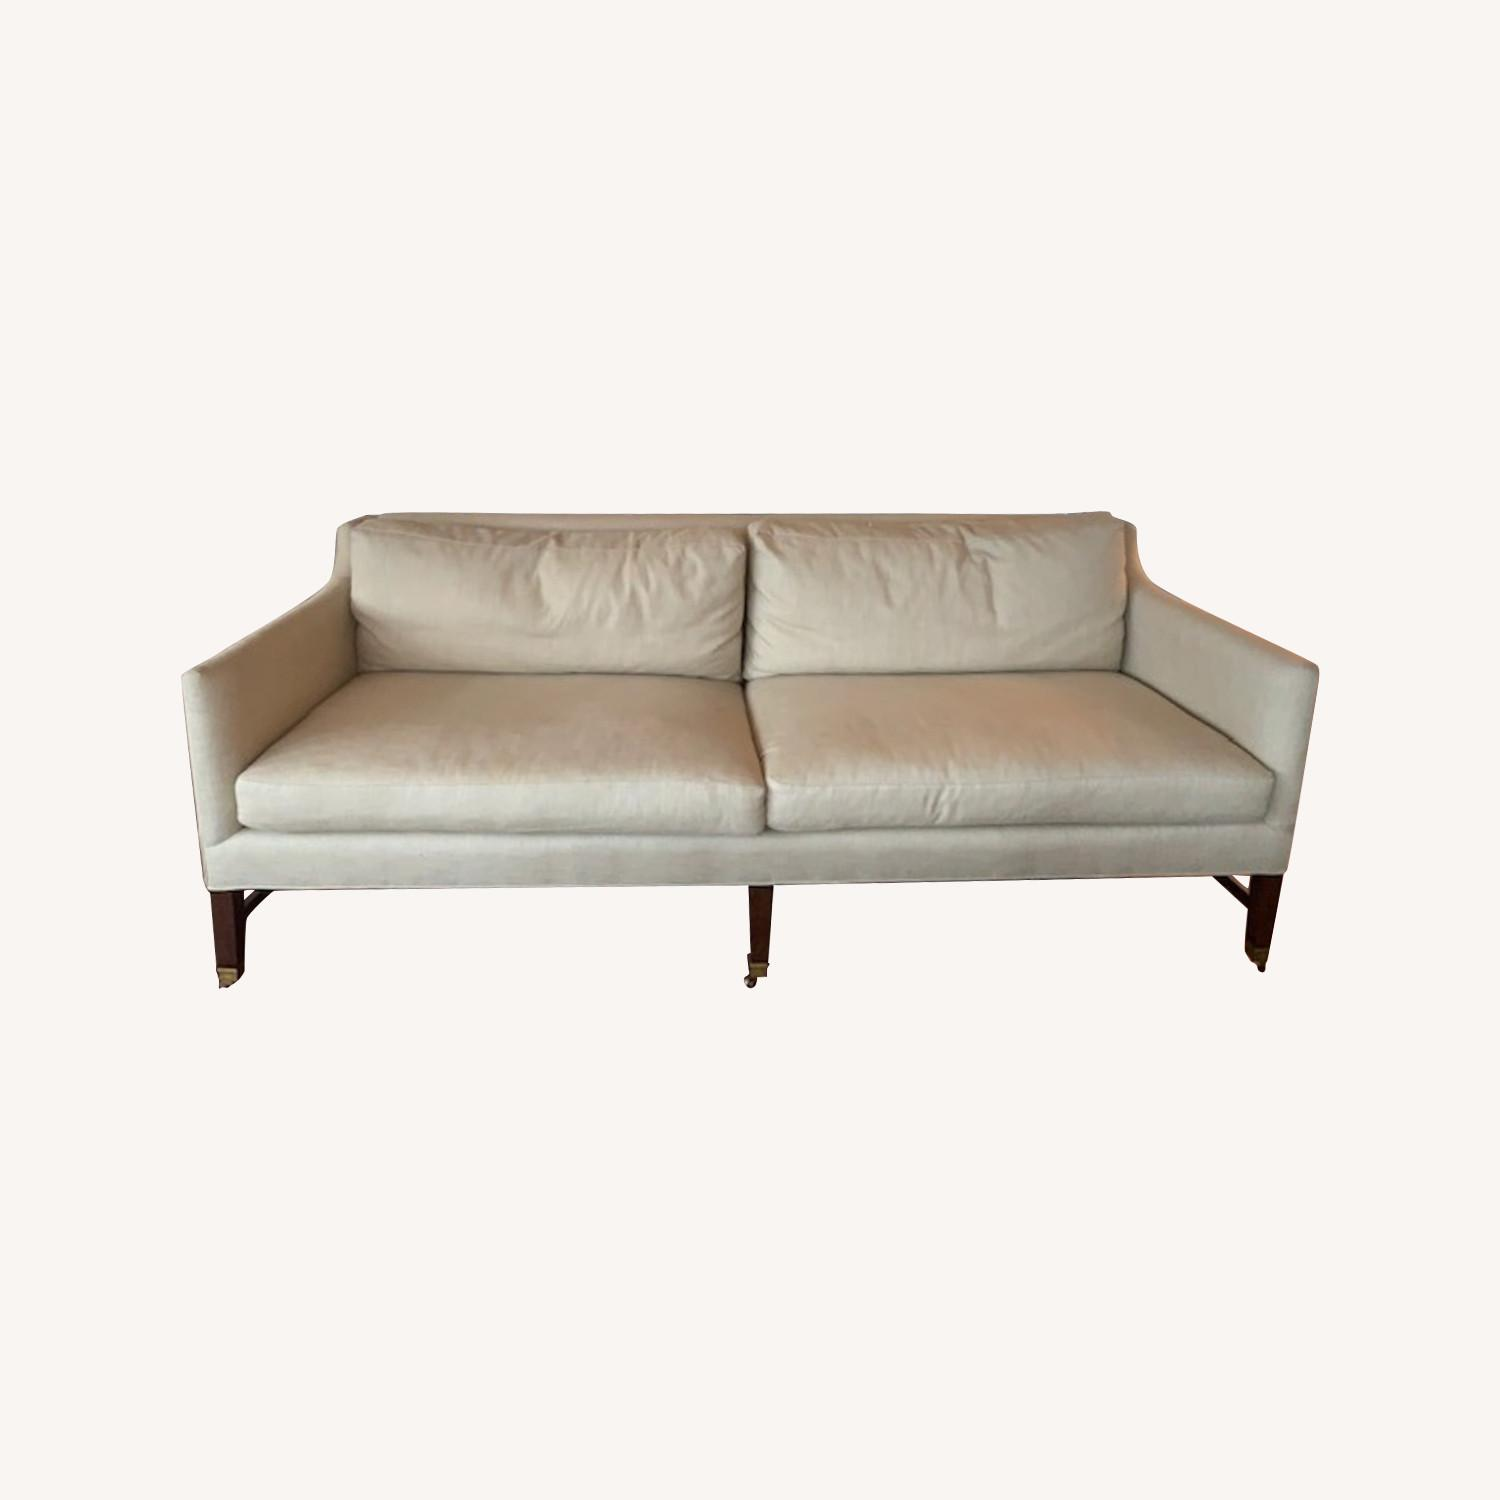 Lee Jofa Upholstered Sofas with Bronze Capped Legs - image-0